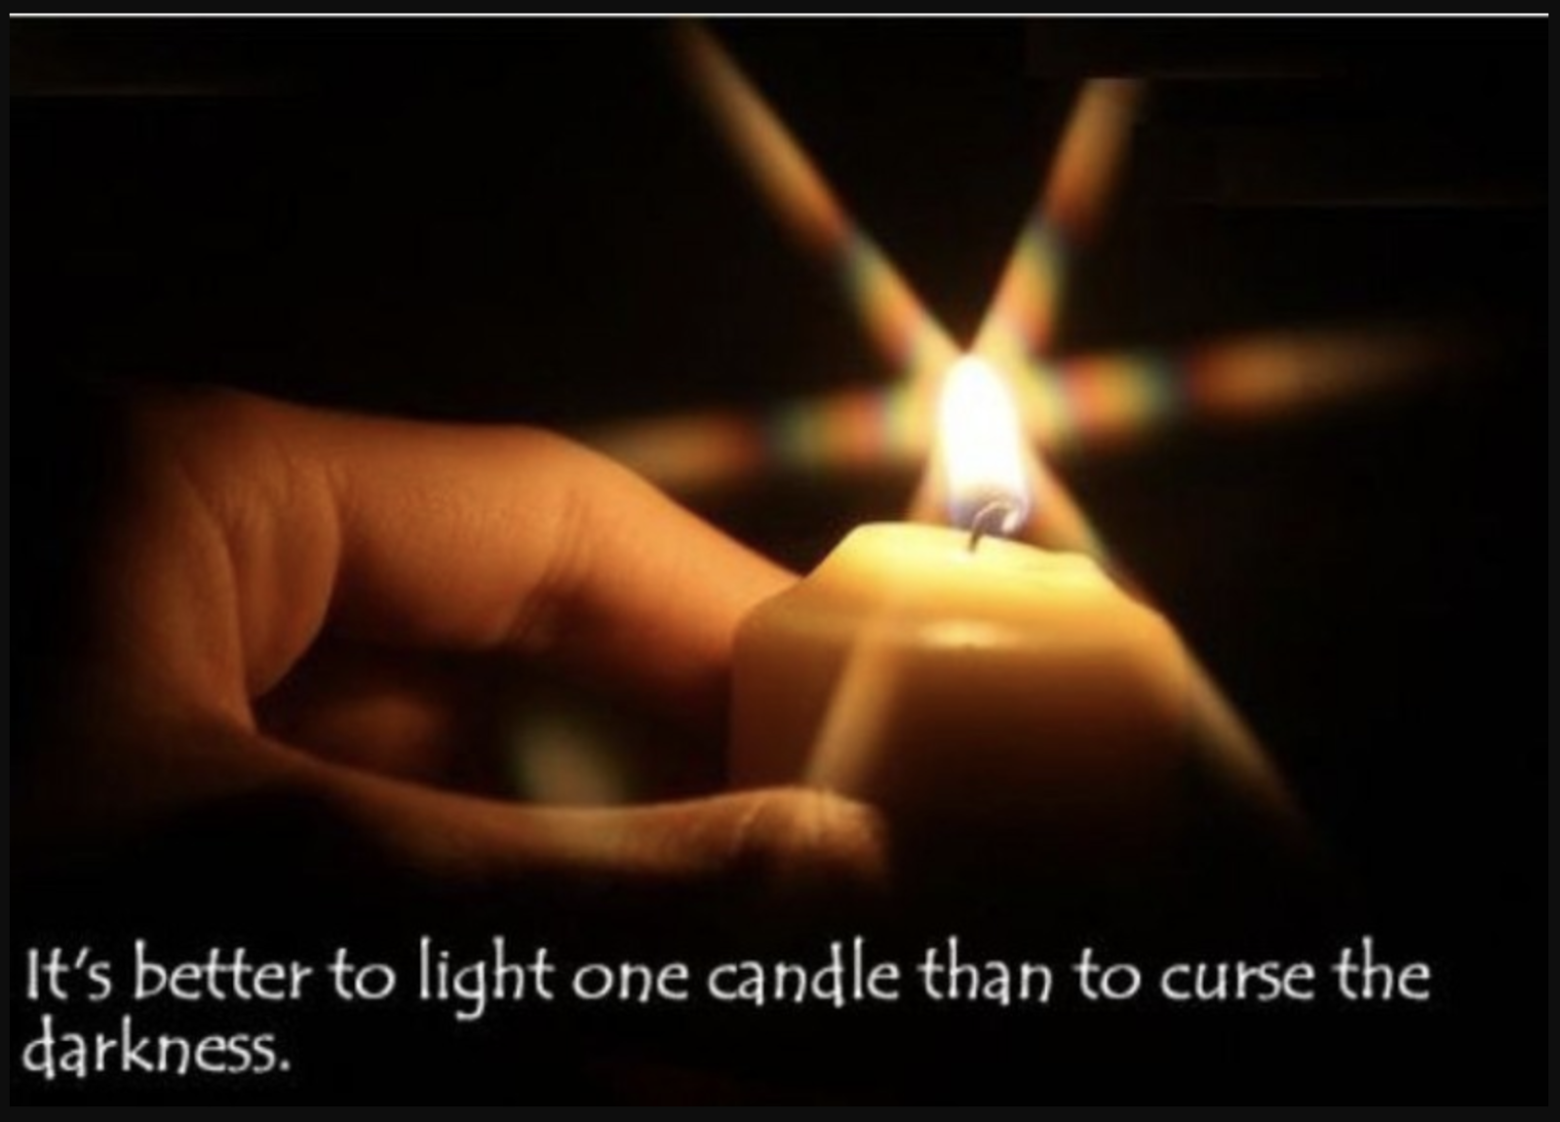 It's better to light one candle than curse the darkness